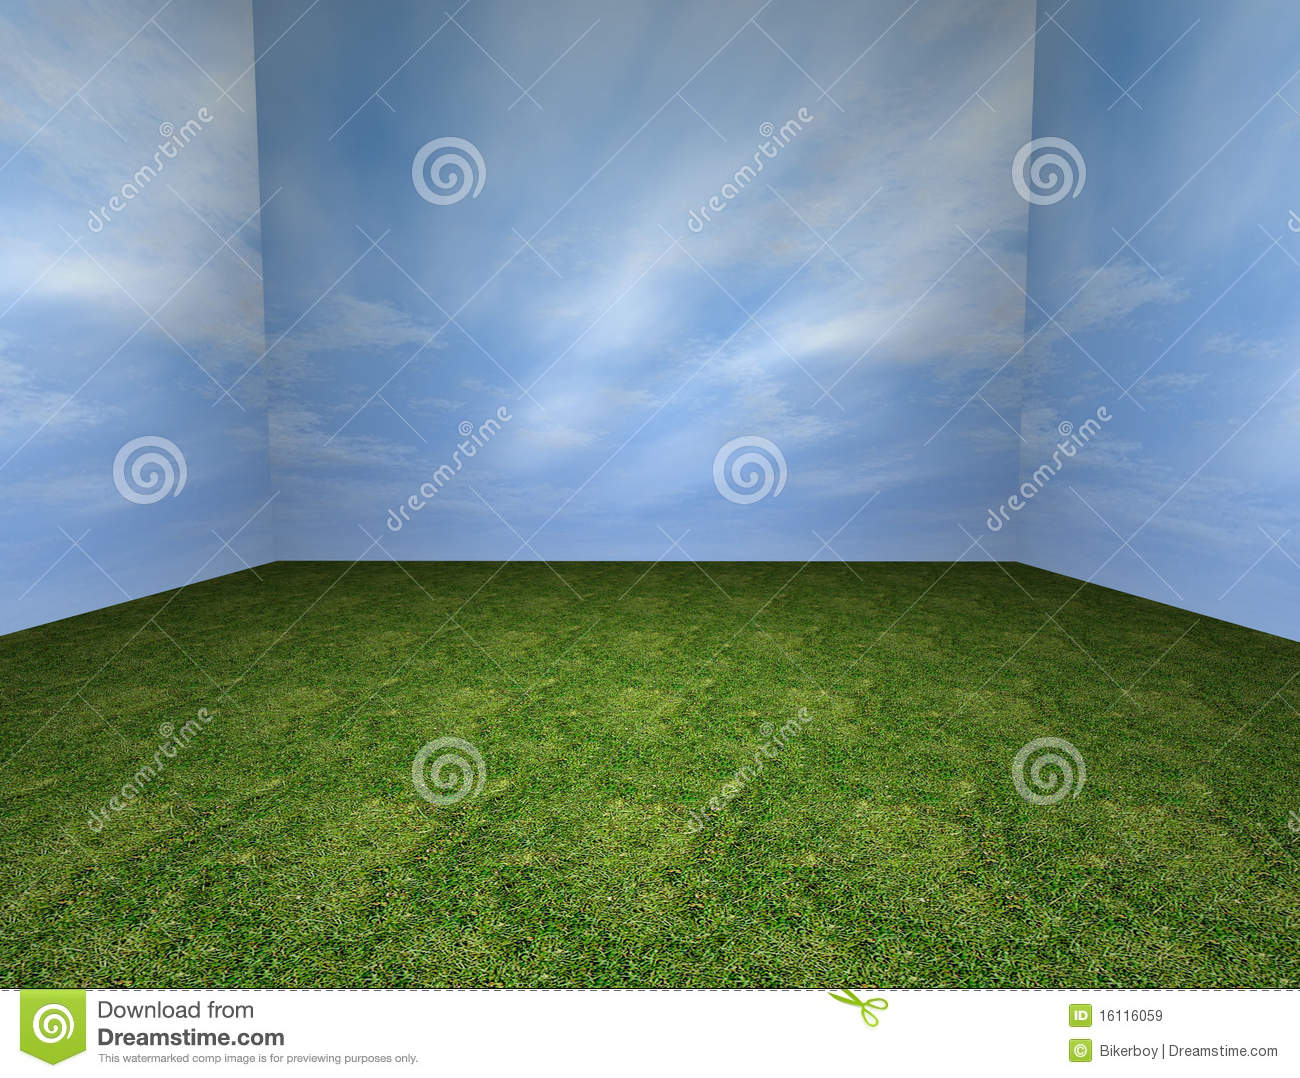 Nature room. Nature Room Royalty Free Stock Images   Image  16116059